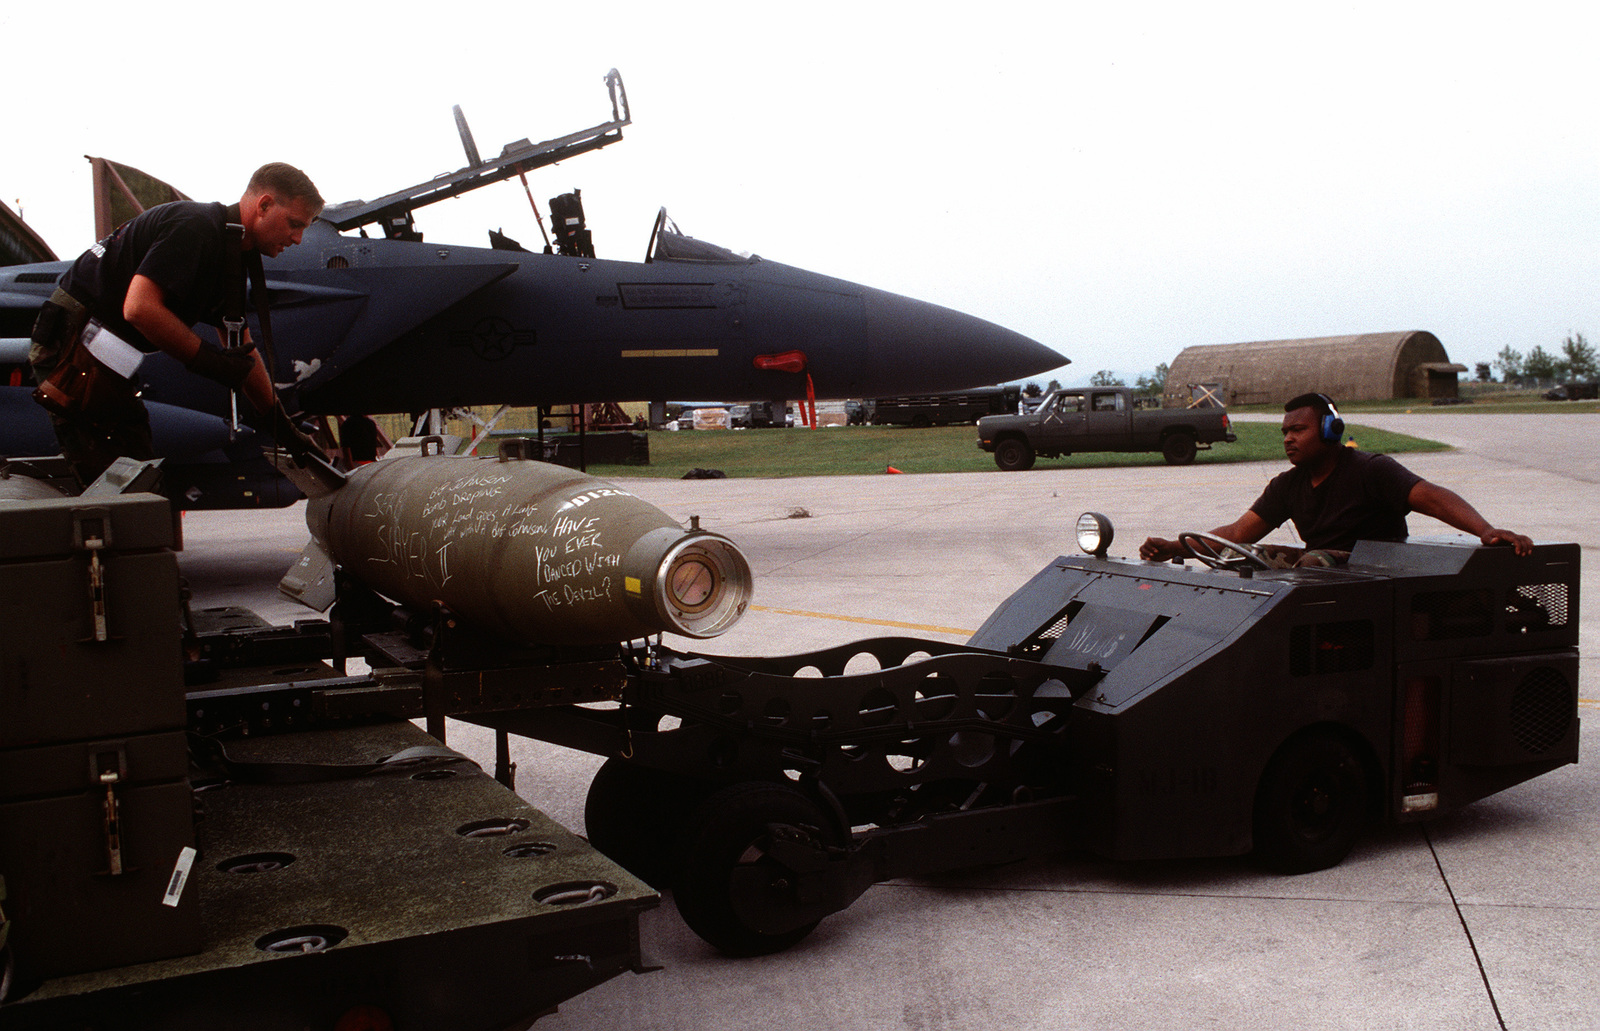 Weapon loaders offload the main body warhead and tail section of a laser guided bomb from a heavy expanded mobility ammunitions trailer prior to being loaded onto a US Air Force F-16C Fighting Falcon aircraft from the 555th Fighter Squadron for NATO airstrikes against the Bosnian Serbs. An F-15 is parked in the background